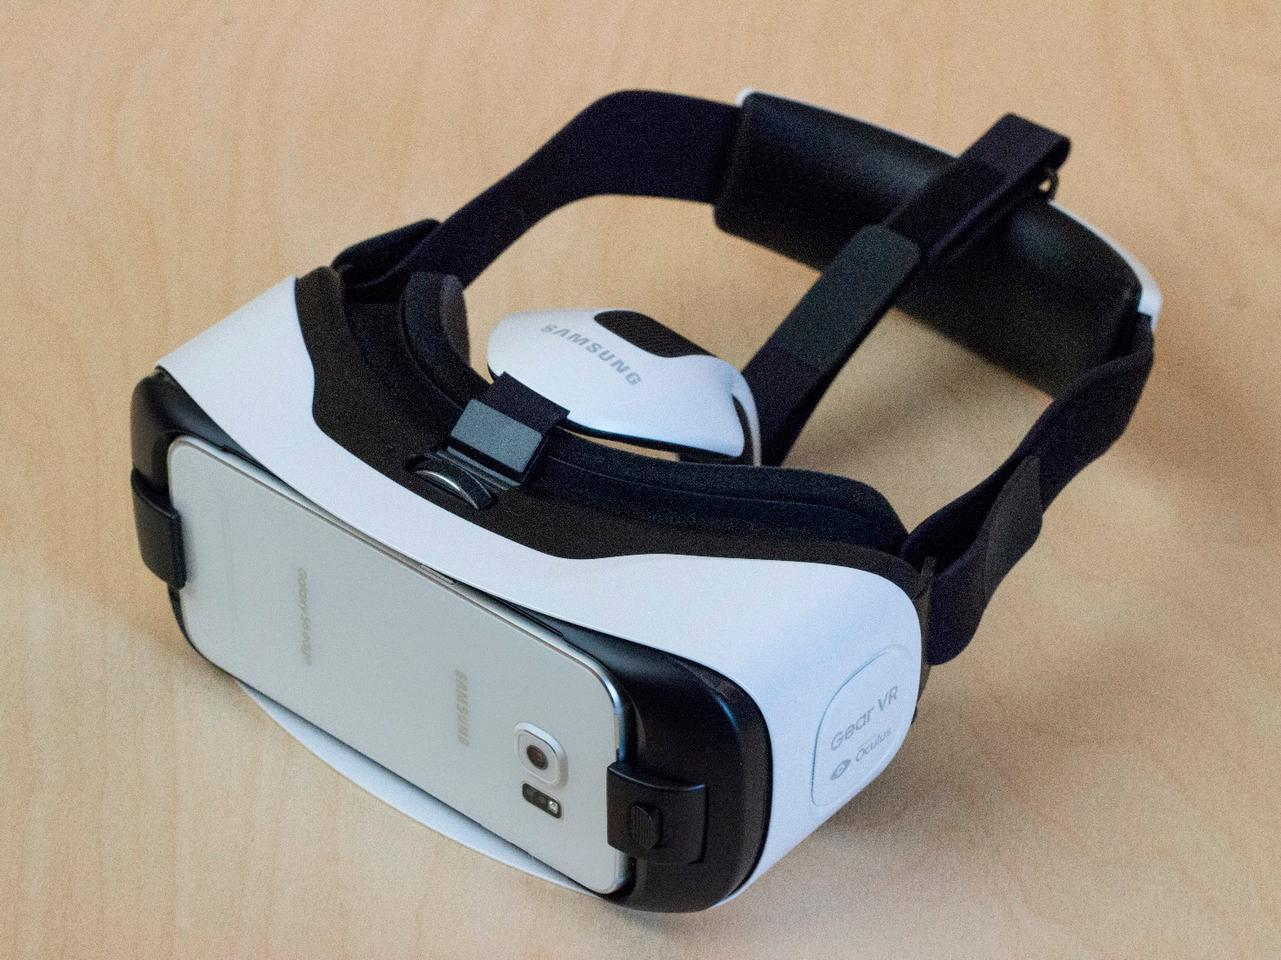 The Samsung Gear VR for GS6, which relies on a Galaxy S6 or Galaxy S6 edge